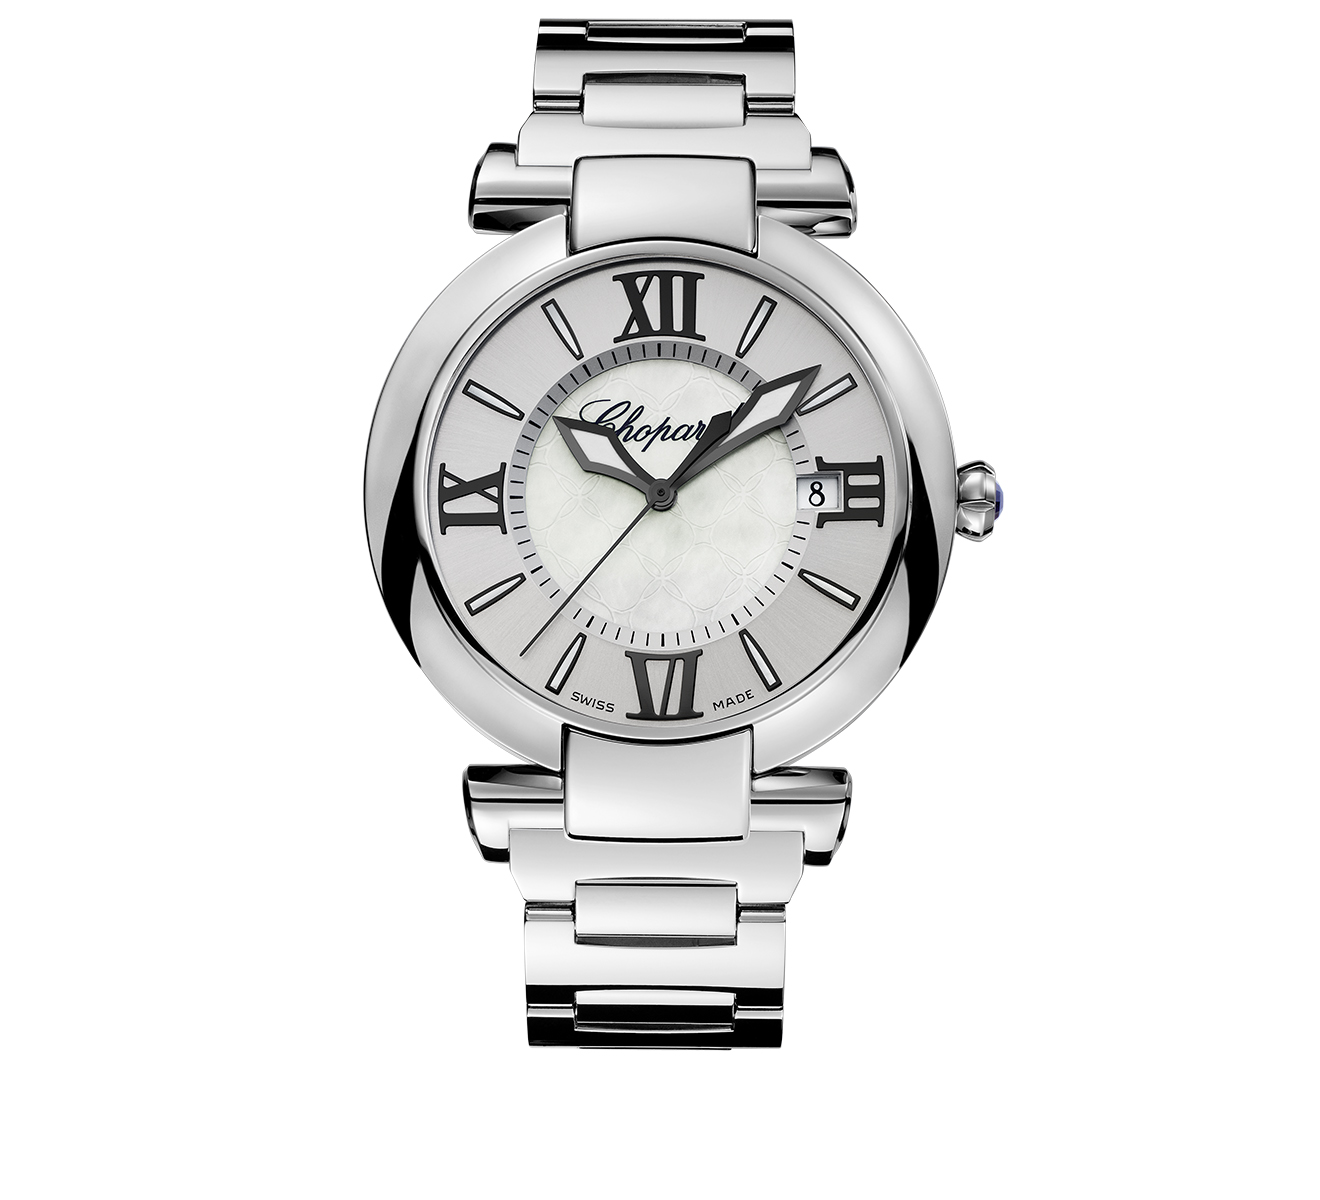 Часы Imperiale Chopard Imperiale 388531-3003 - фото 1 – Mercury